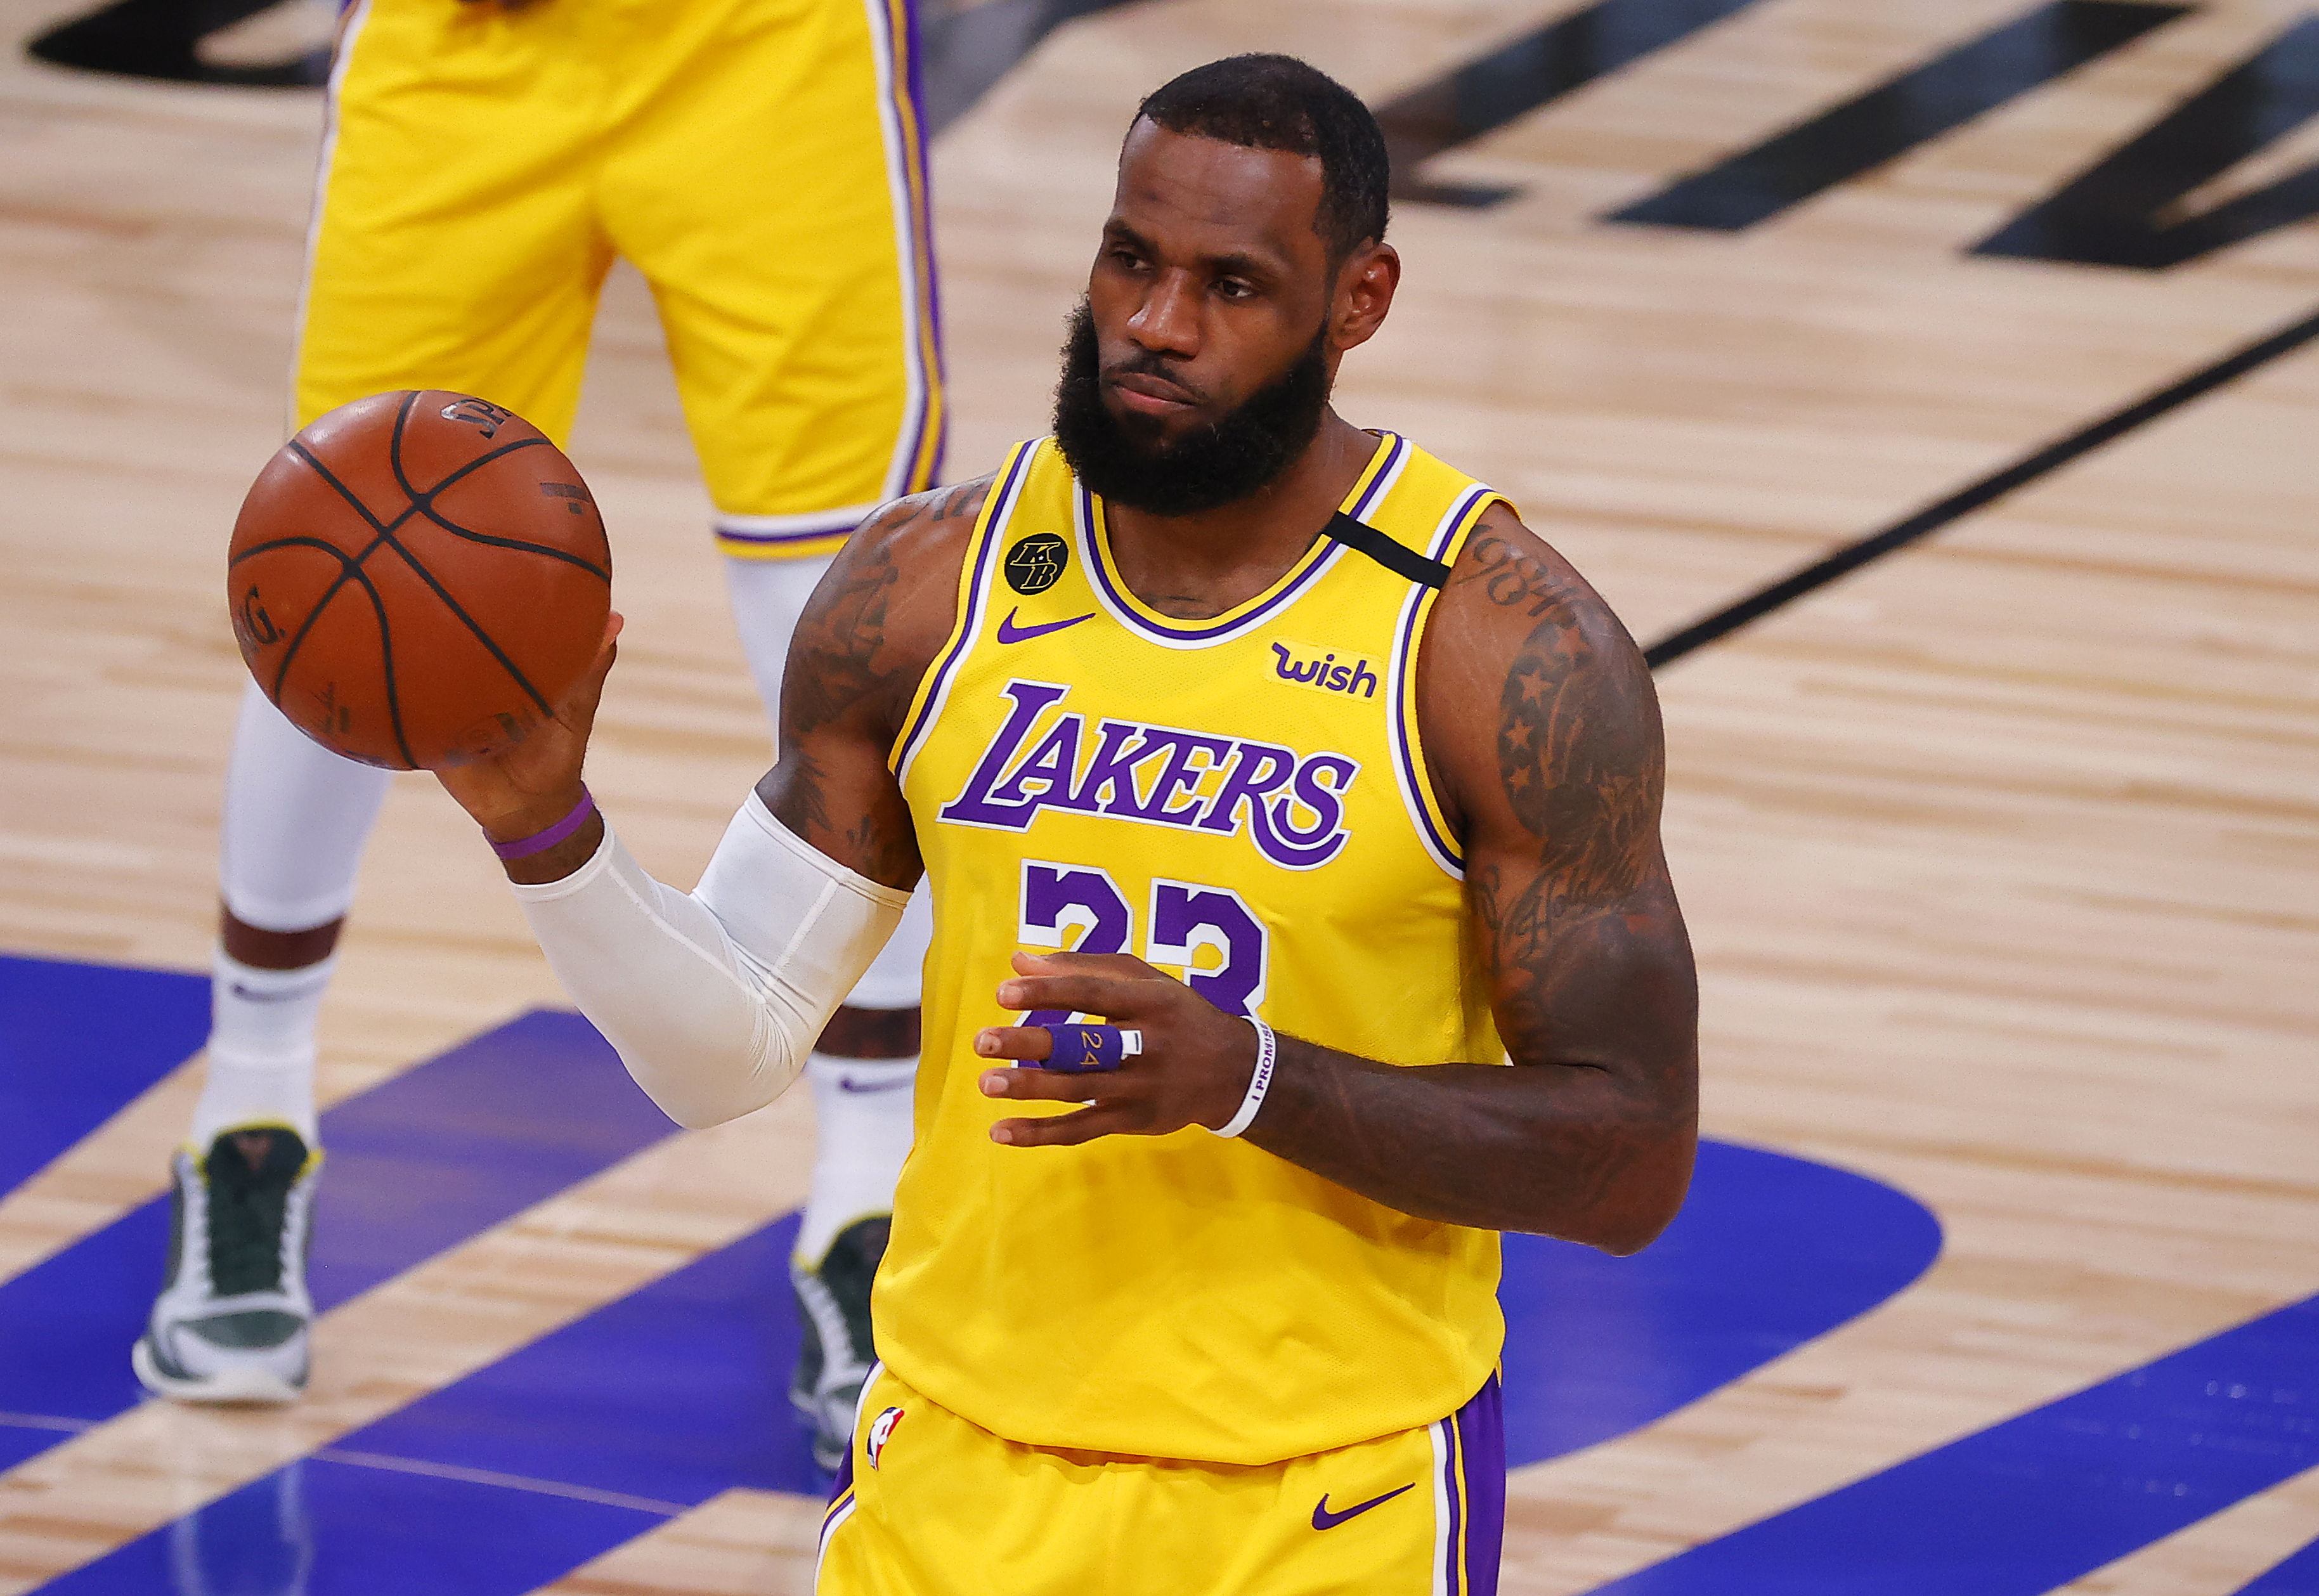 lebron was not happy with how his lakers teammates